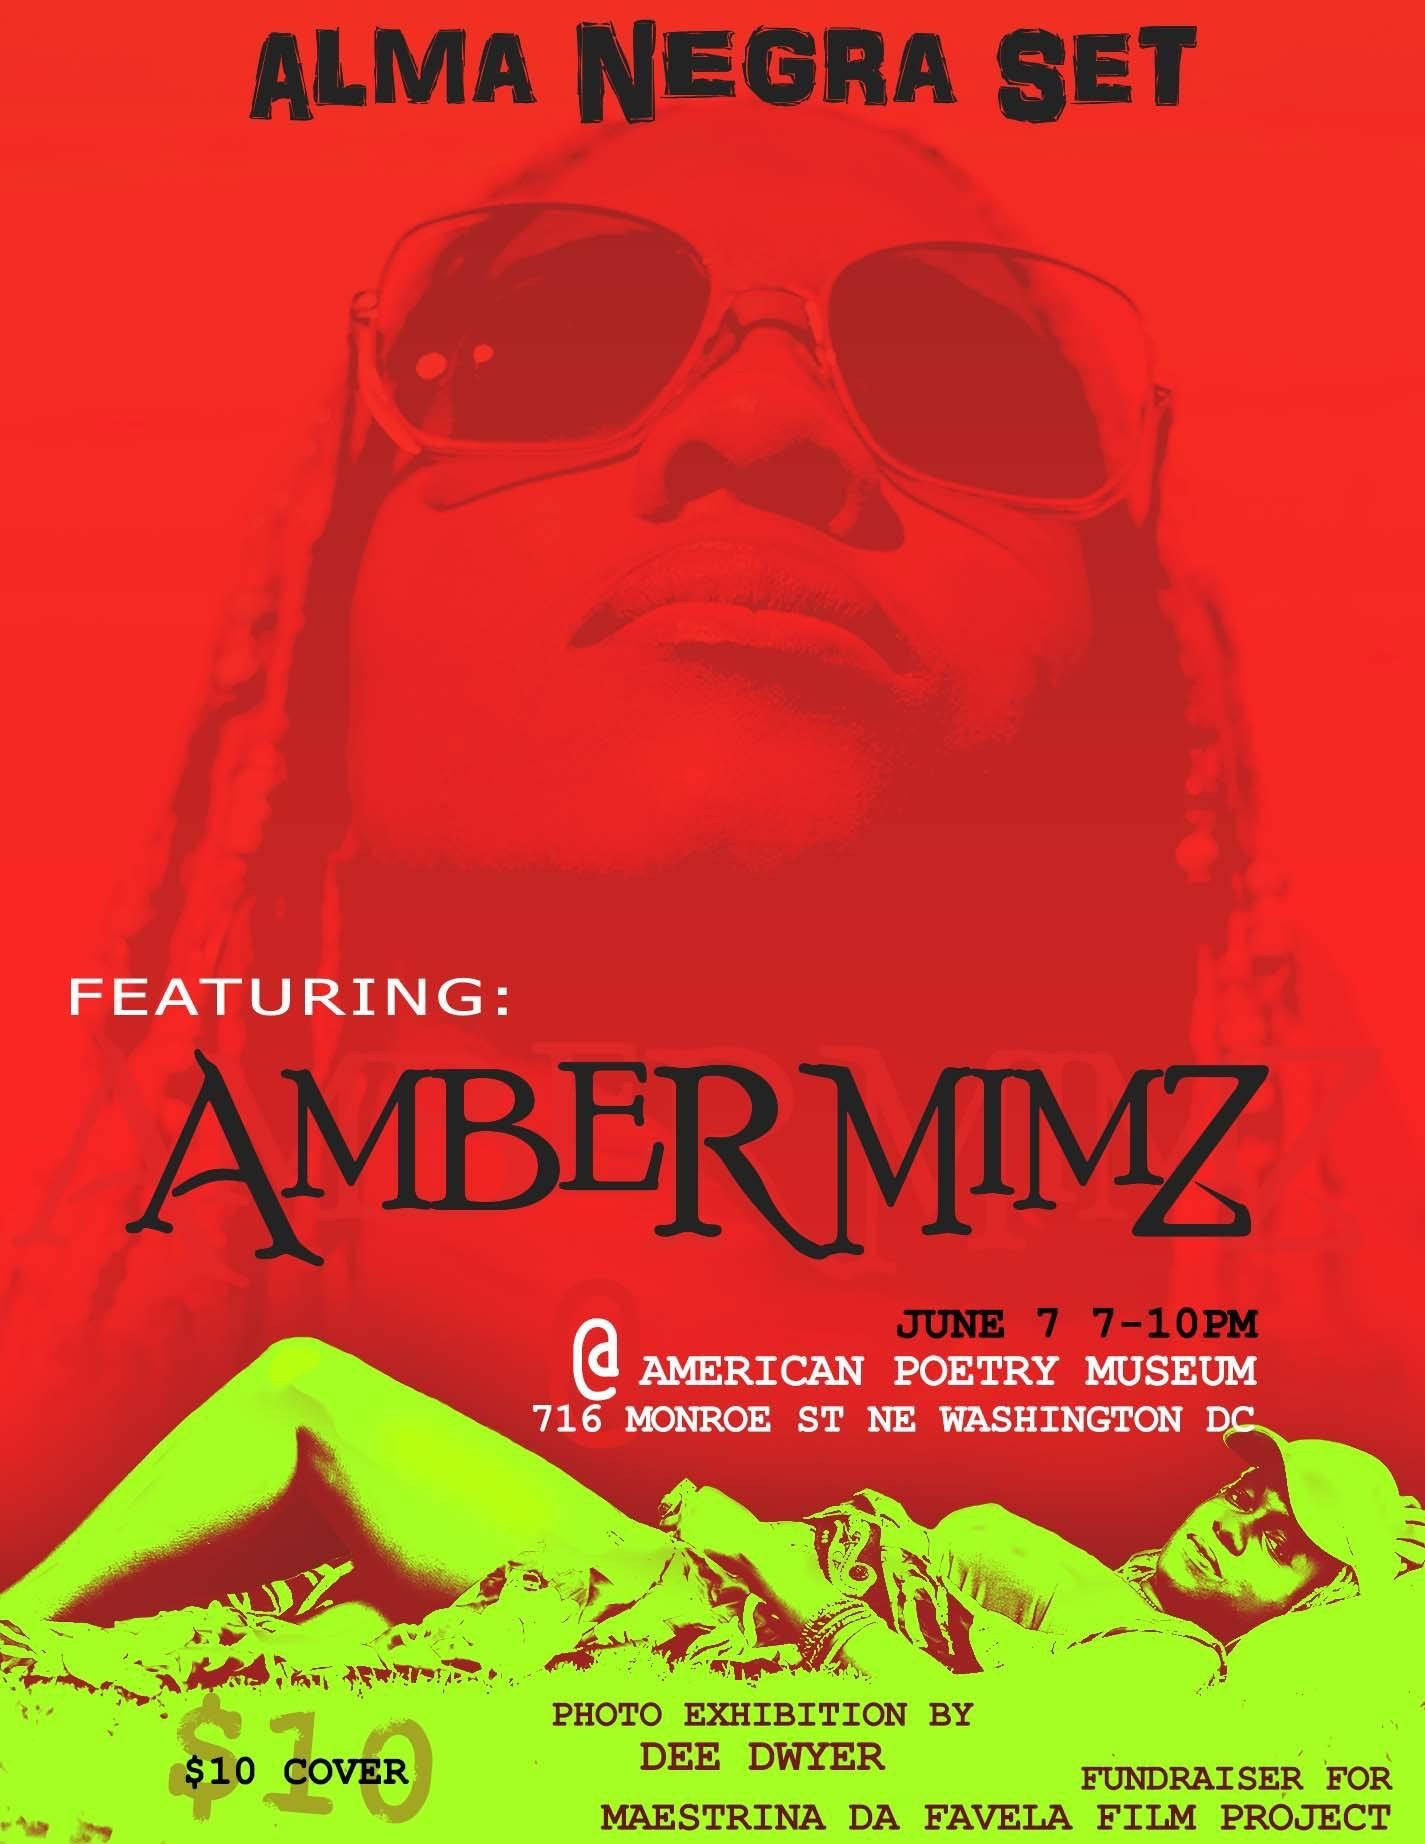 American Poetry Museum: Alma Negra Sets - Amber Mimz